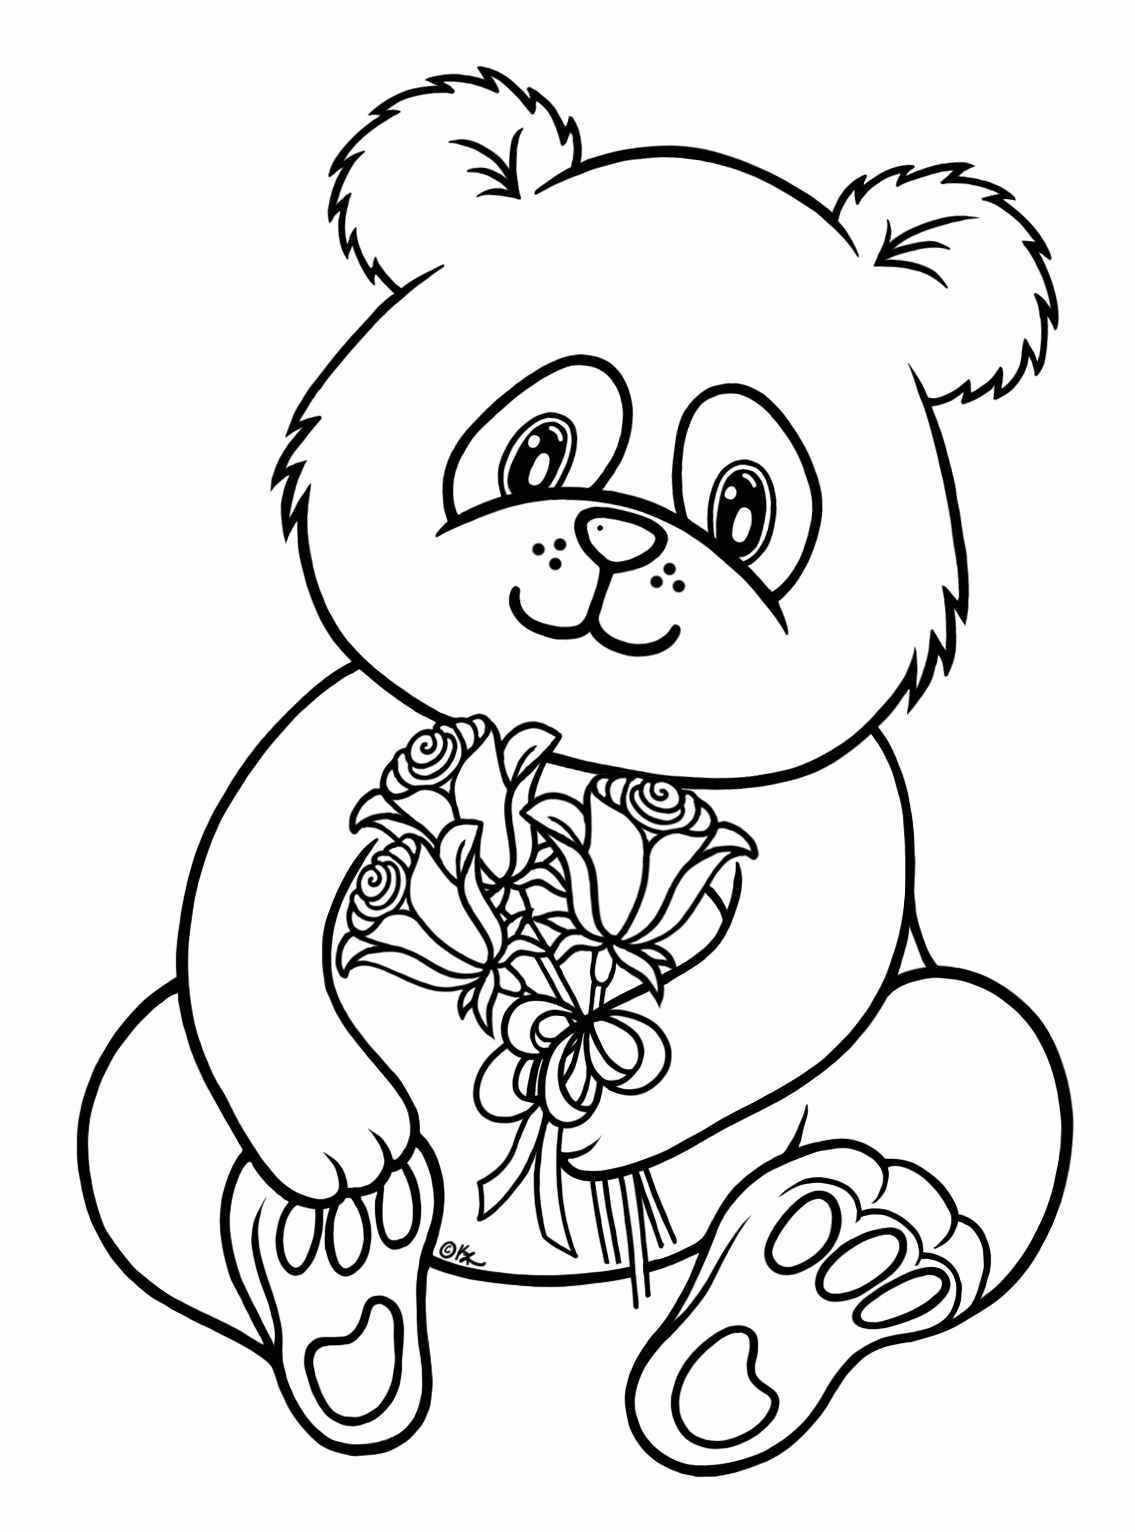 Baby Panda Bear Coloring Pages Bear Coloring Pages Unicorn Coloring Pages Panda Coloring Pages